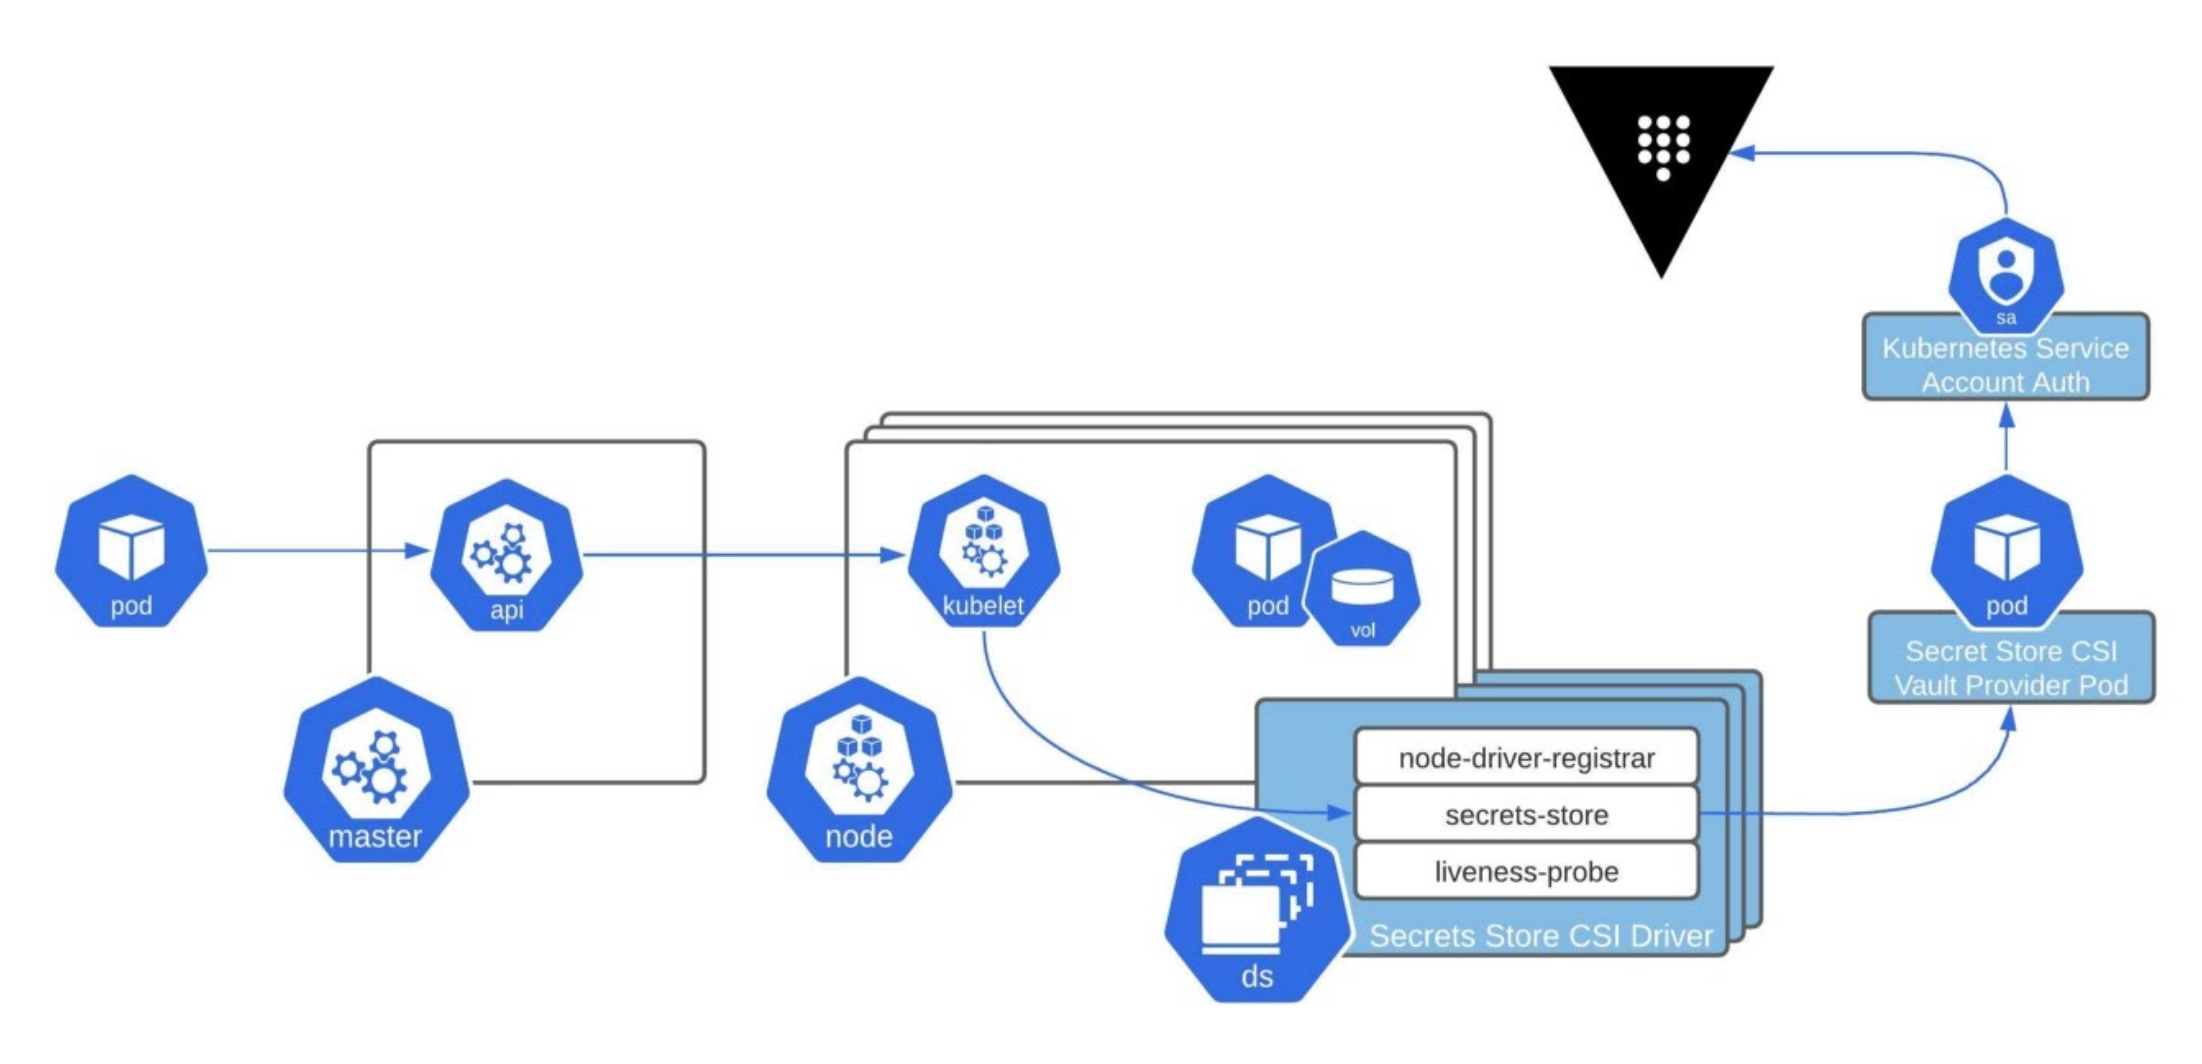 This diagram illustrates the end-to-end process of an application pod using the CSI Secrets Store Driver and Vault CSI provider to mount a volume with secrets from Vault.